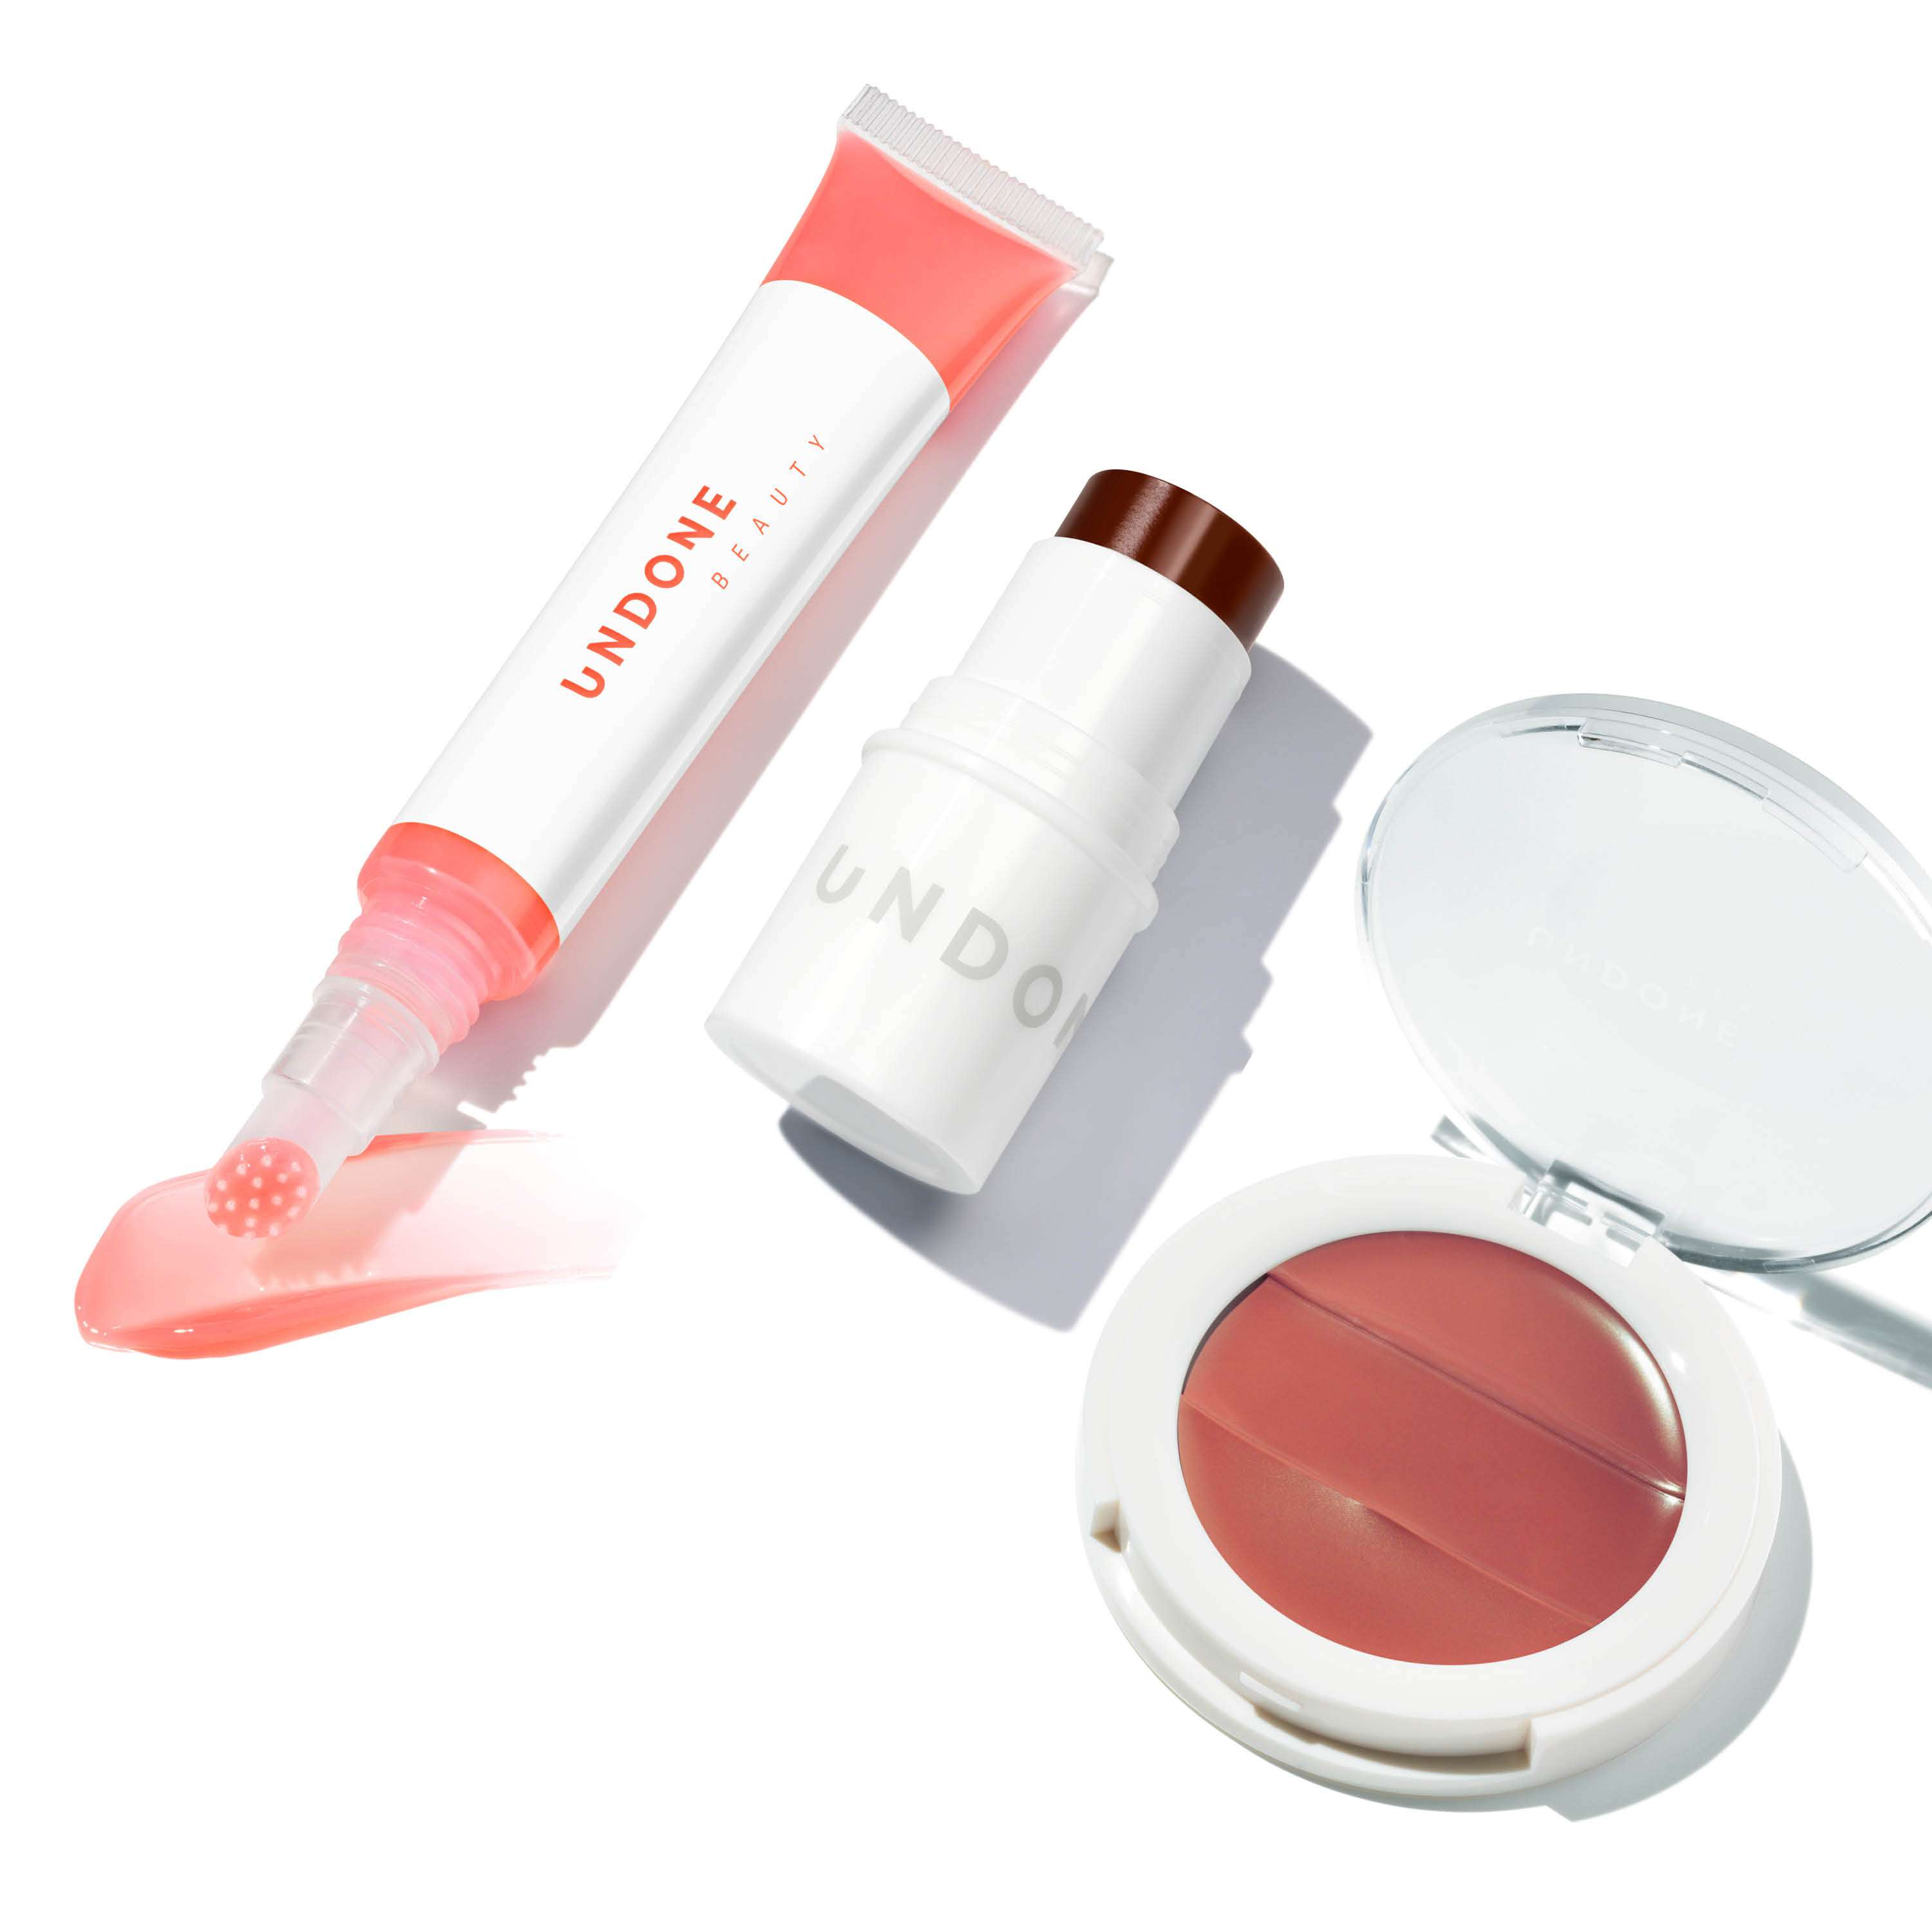 Undone Beauty Work From Home Bundle